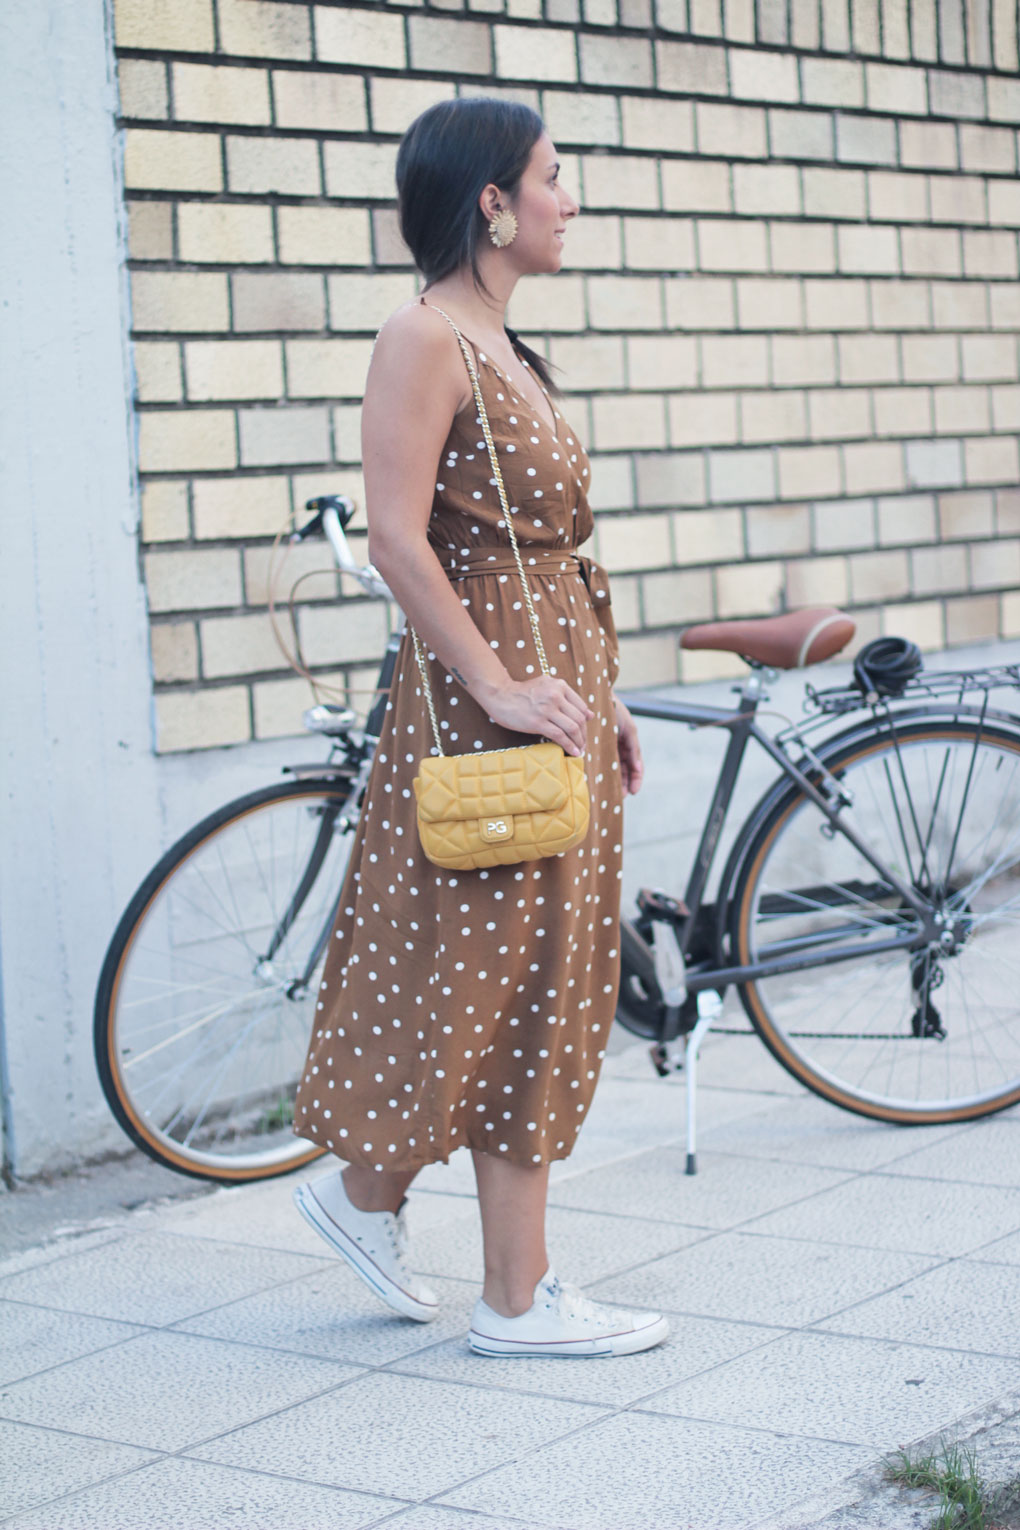 street-style-lunares-street-style-dots